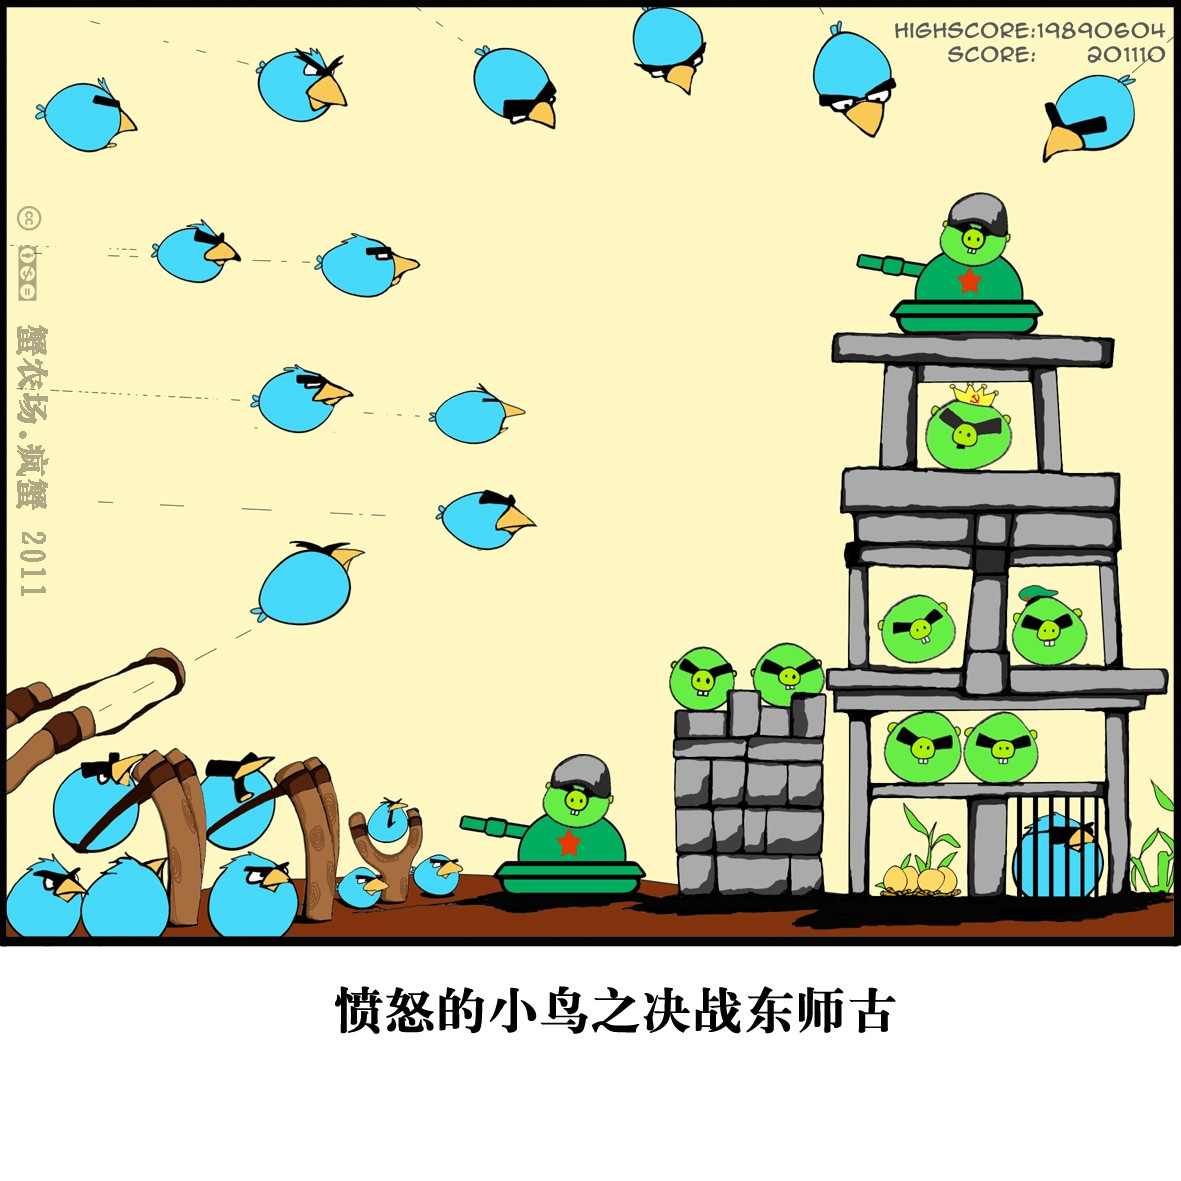 Angry birds attack the town of Dongshigu to rescue Chen Guangcheng, the  blind activist lawyer. Chen is represented as a blue bird wearing  sunglasses, ...